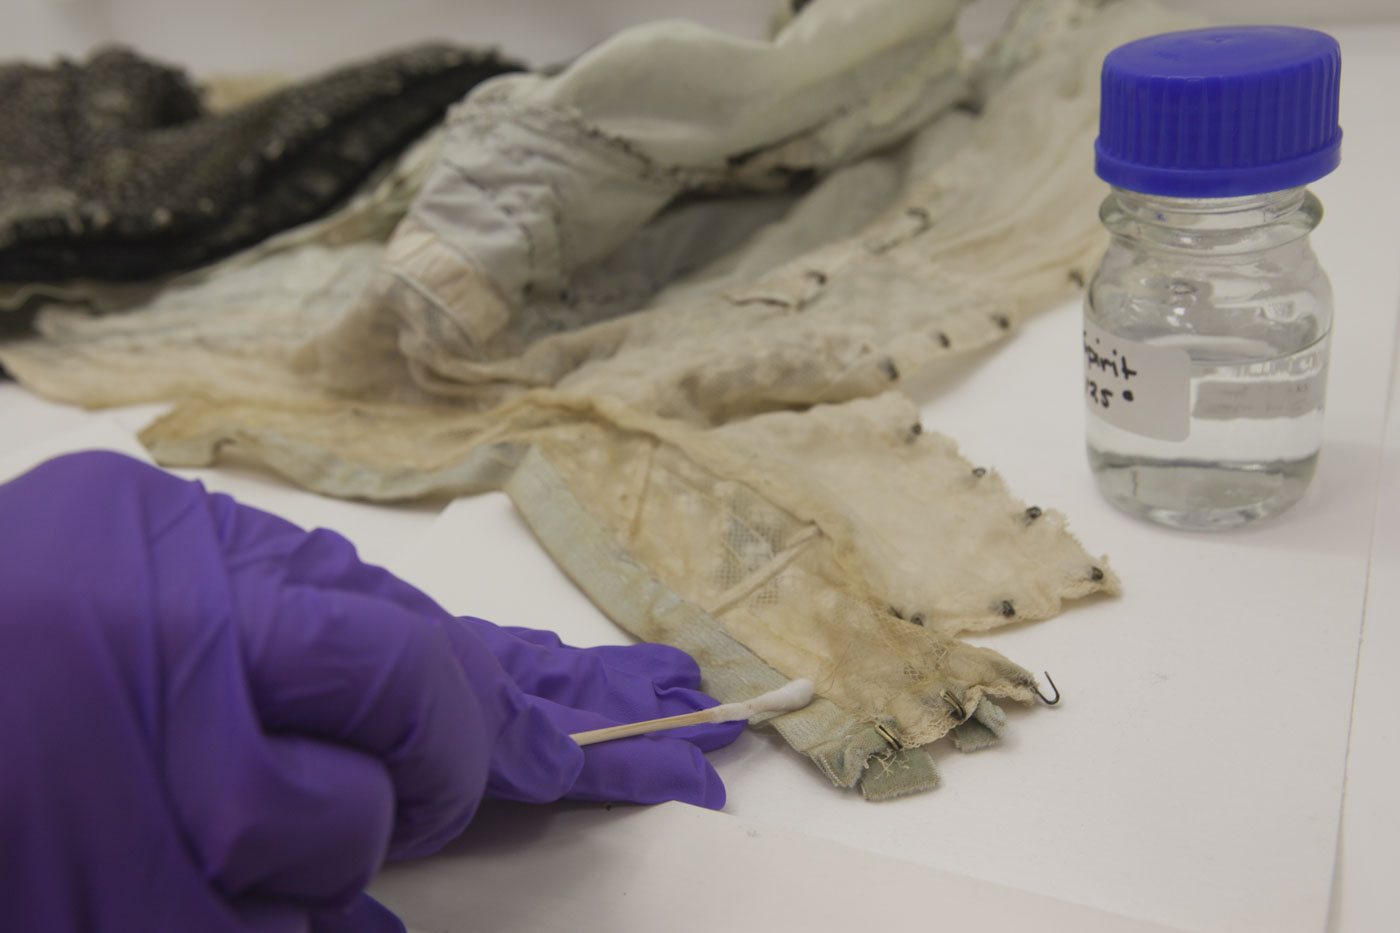 Conservator using a cotton bud to treat fabric in a laboratory. - click to view larger image